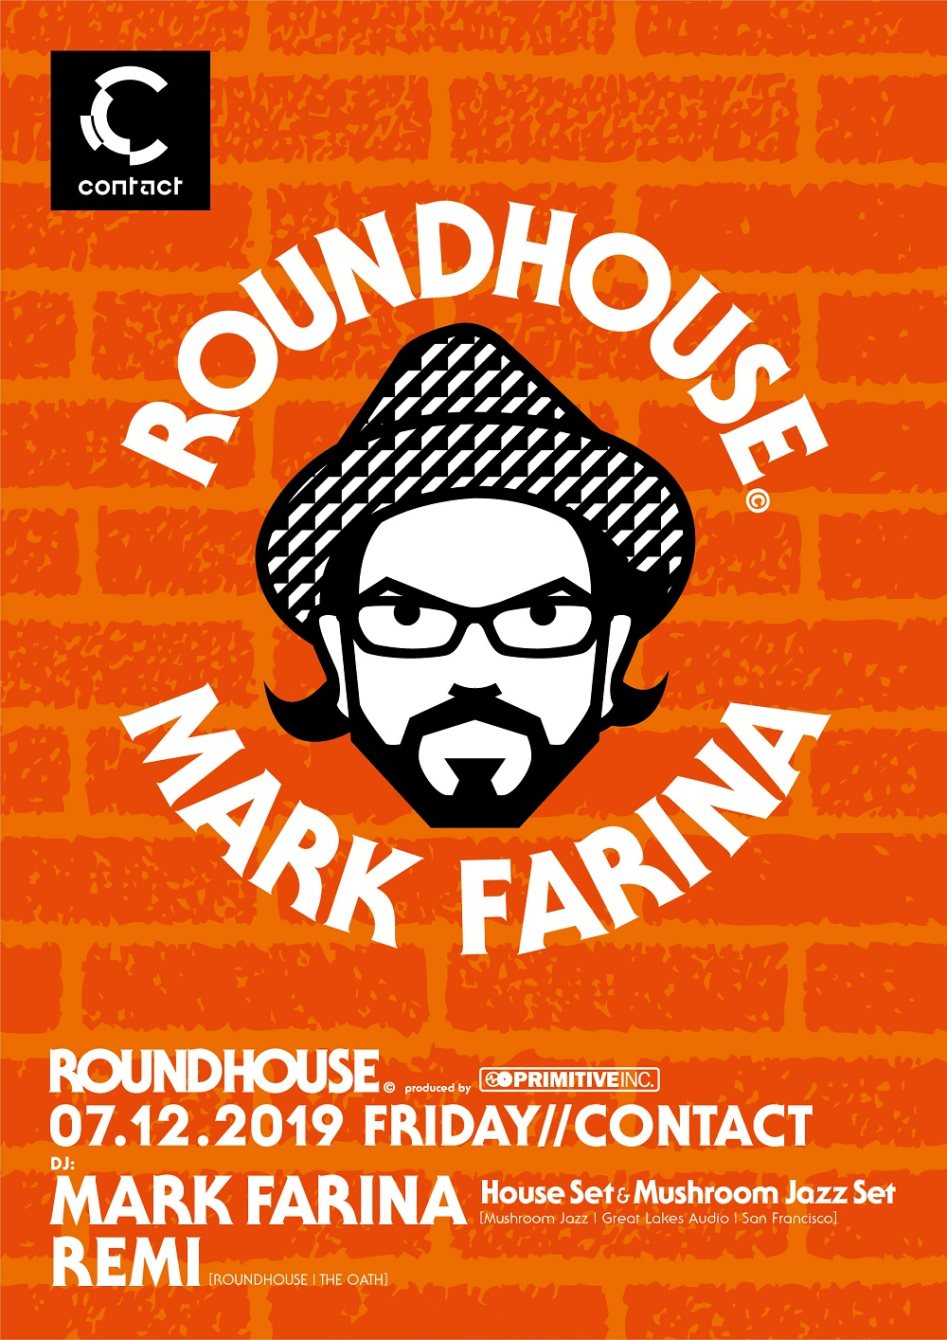 Roundhouse Feat. Mark Farina - Flyer front